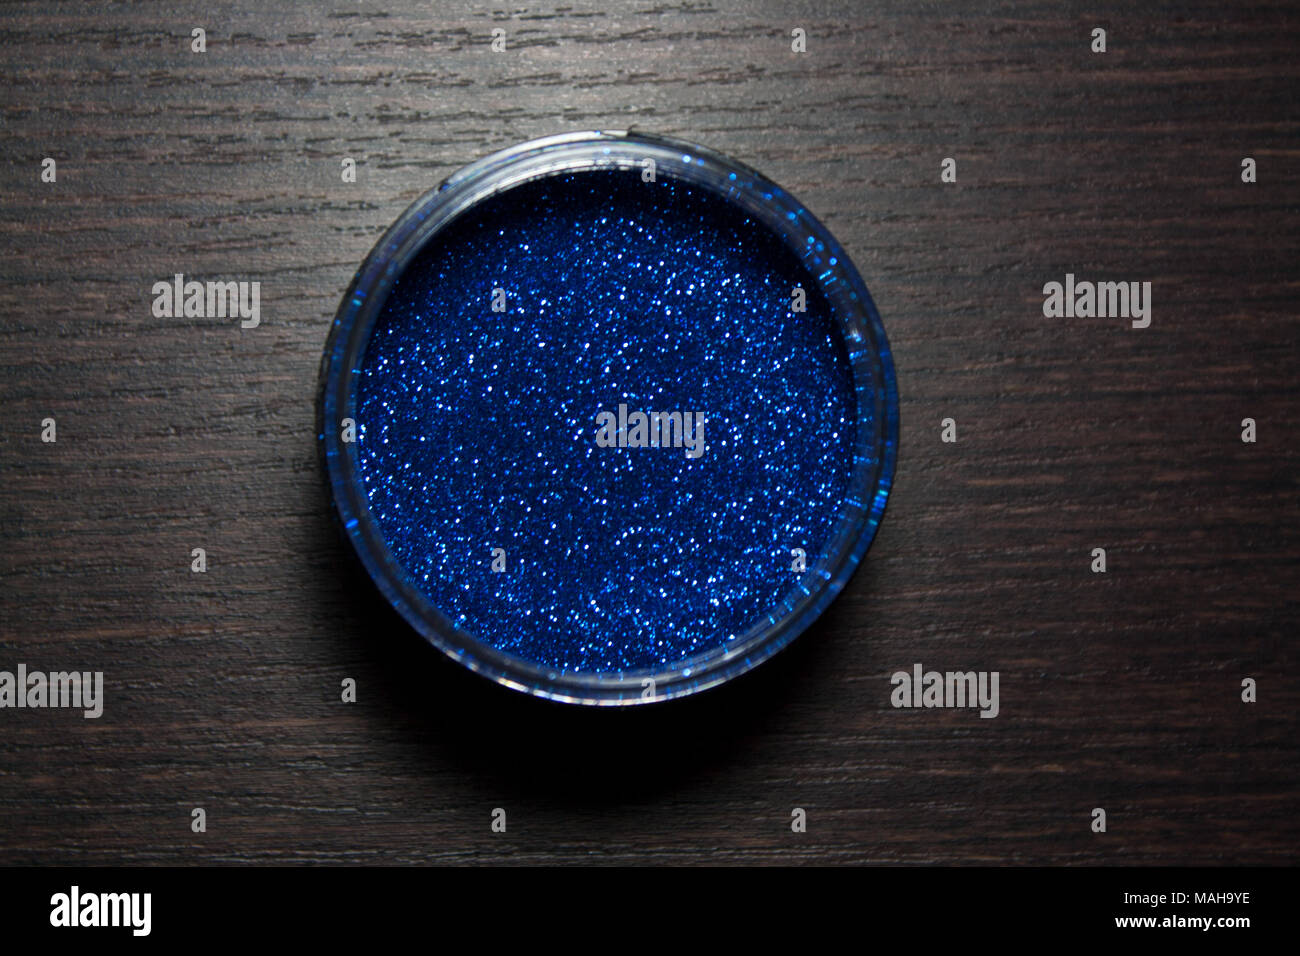 Cobalt blue glitter powder isolated on dark wooden background from a high angle view - Stock Image